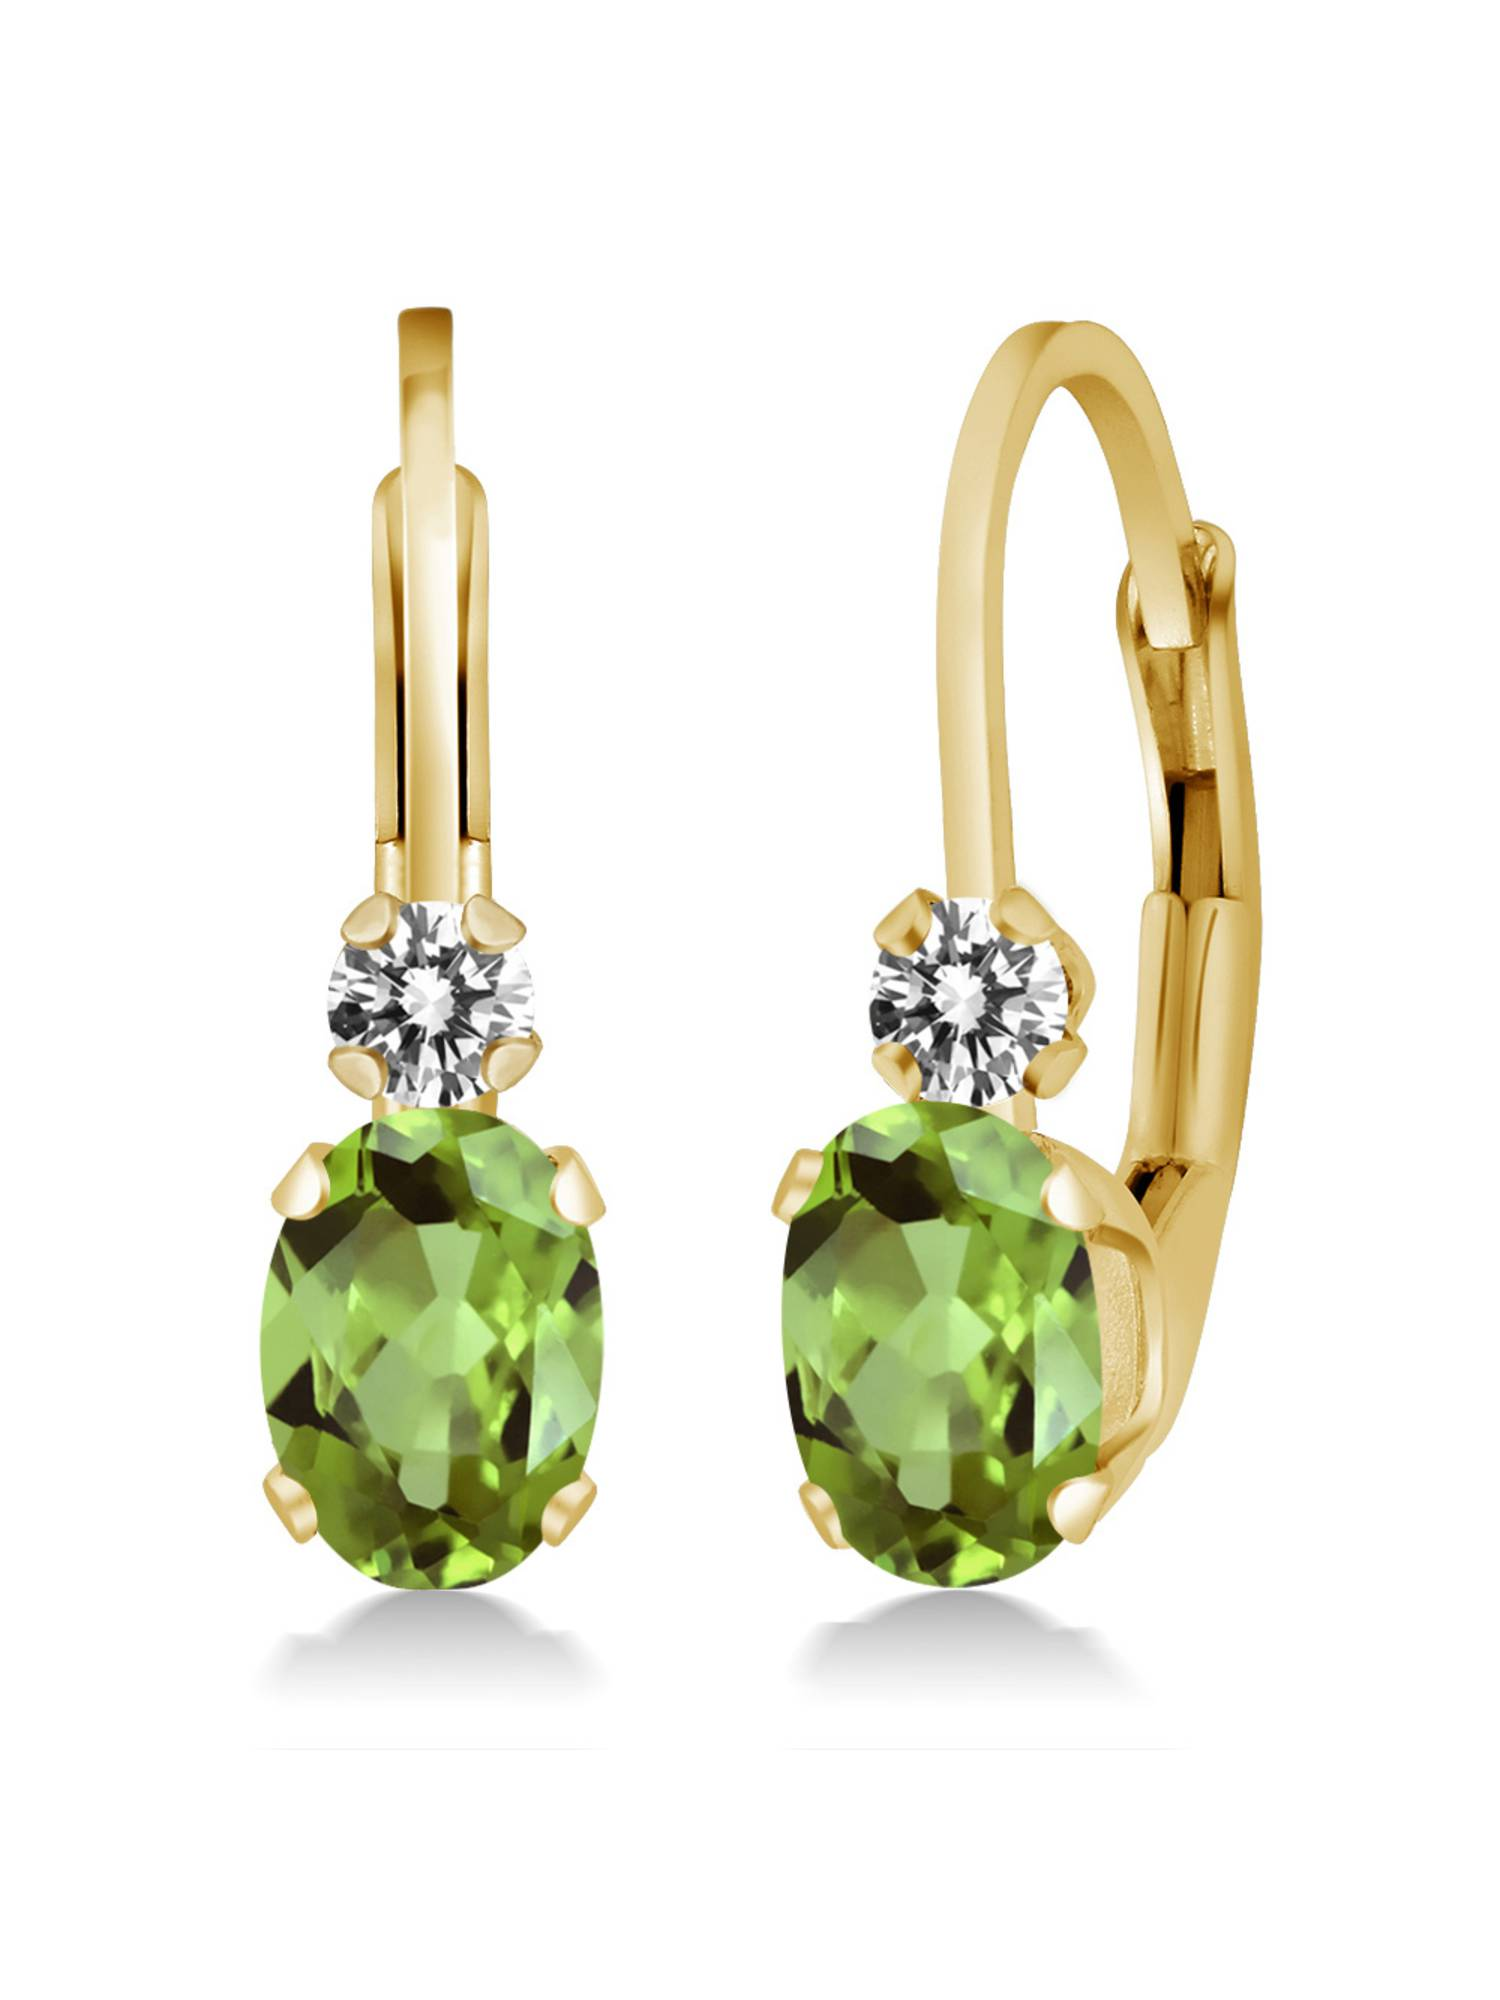 1.07 Ct Oval Green Peridot White Diamond 14K Yellow Gold Earrings